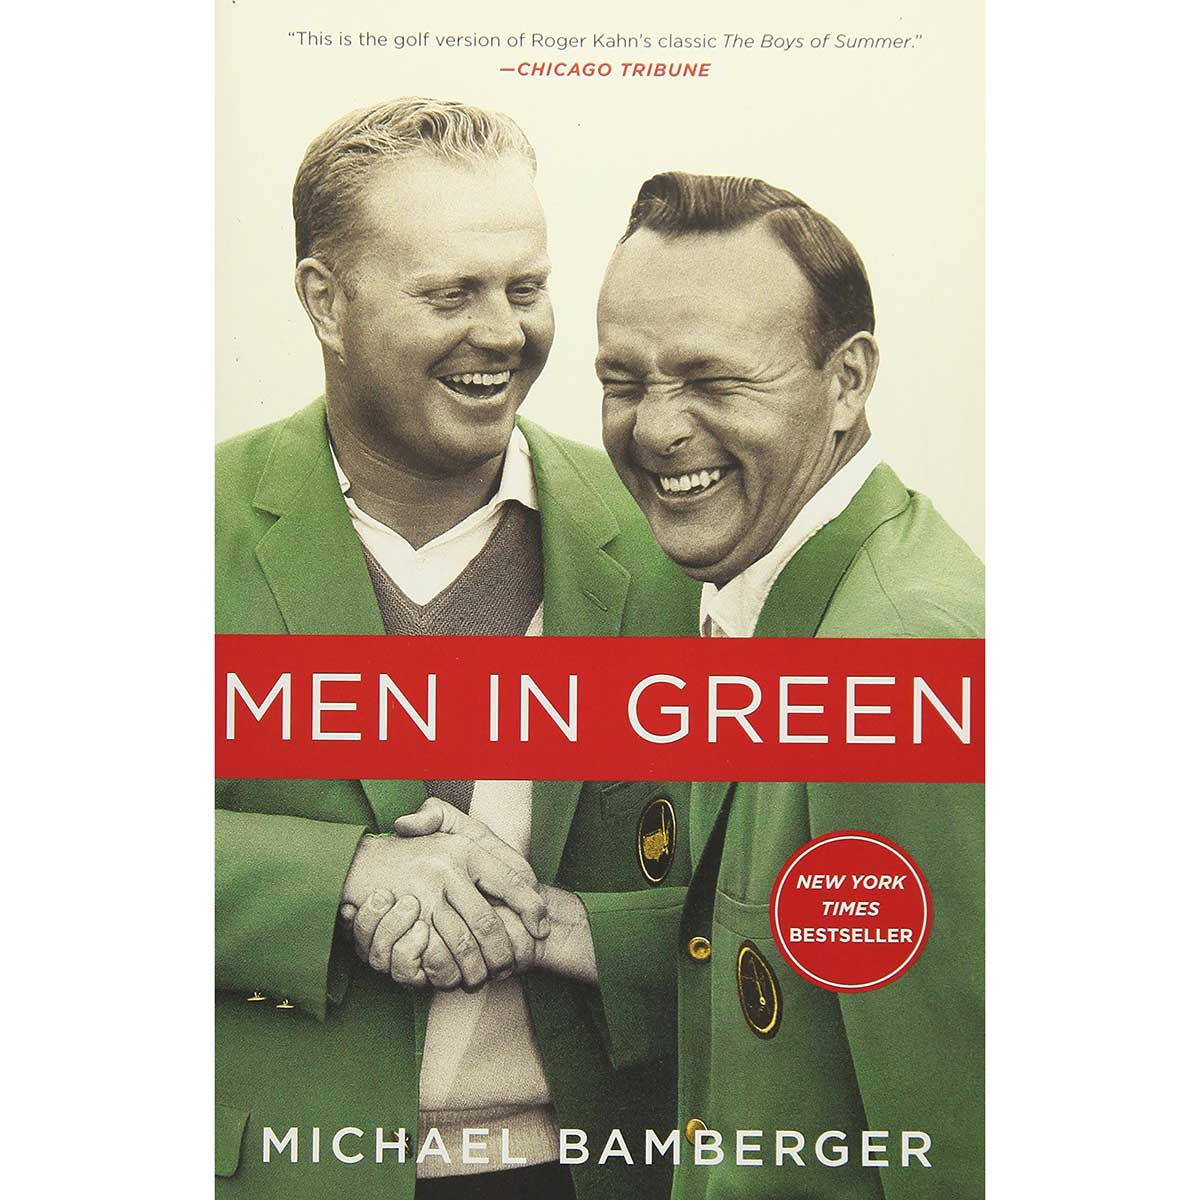 Men In Green Book by Michael Bamberger